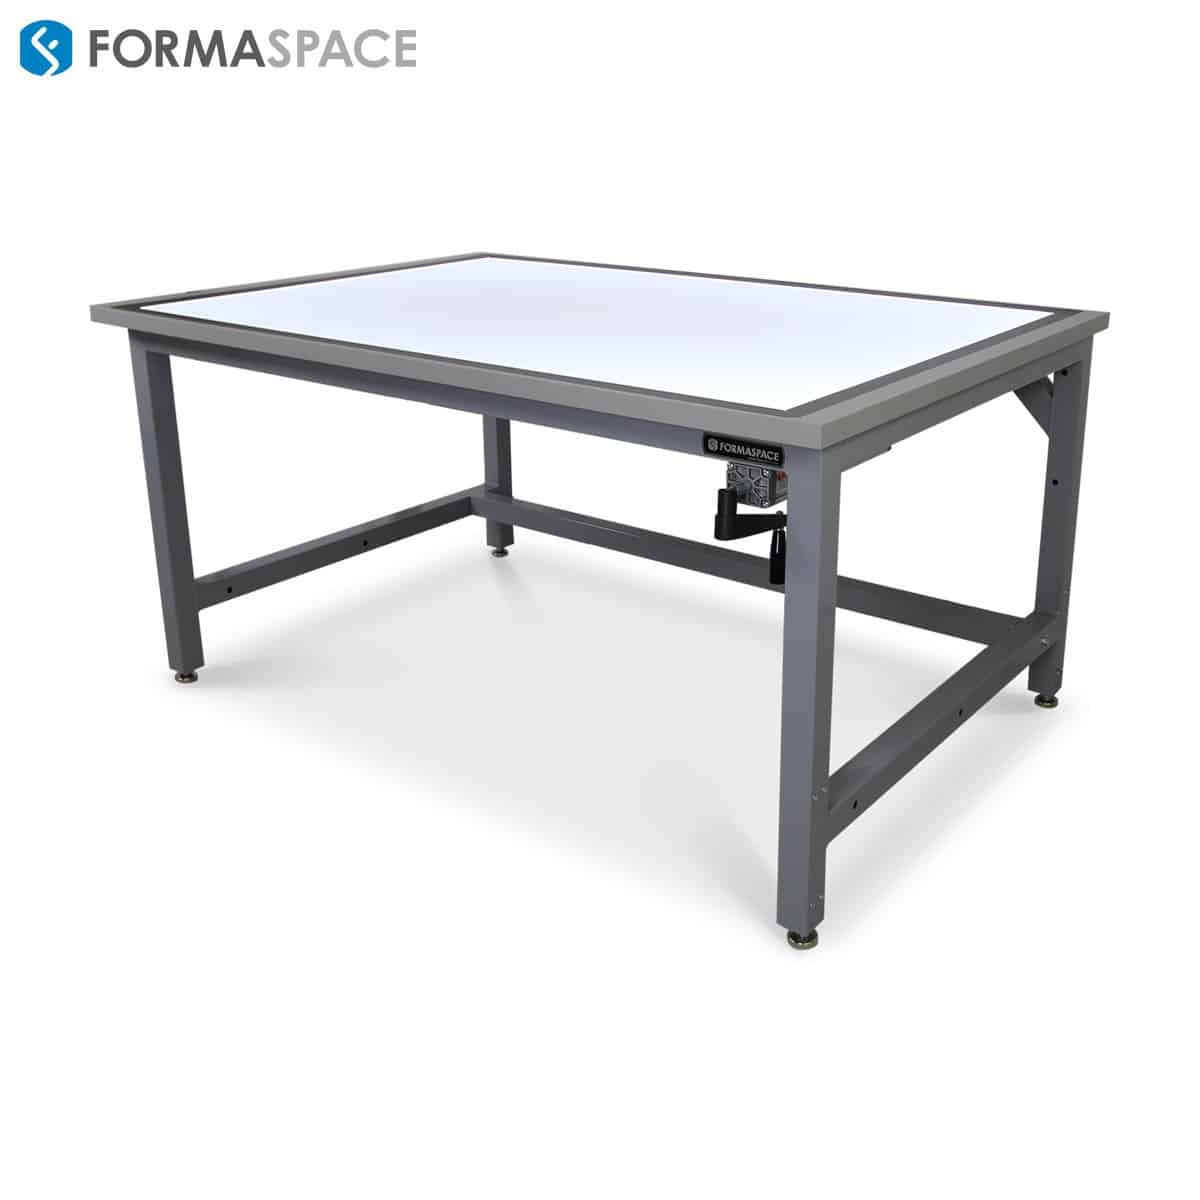 Adjustable Height Drafting Table Height Adjustable Drafting Table With Lighted Surface Formaspace